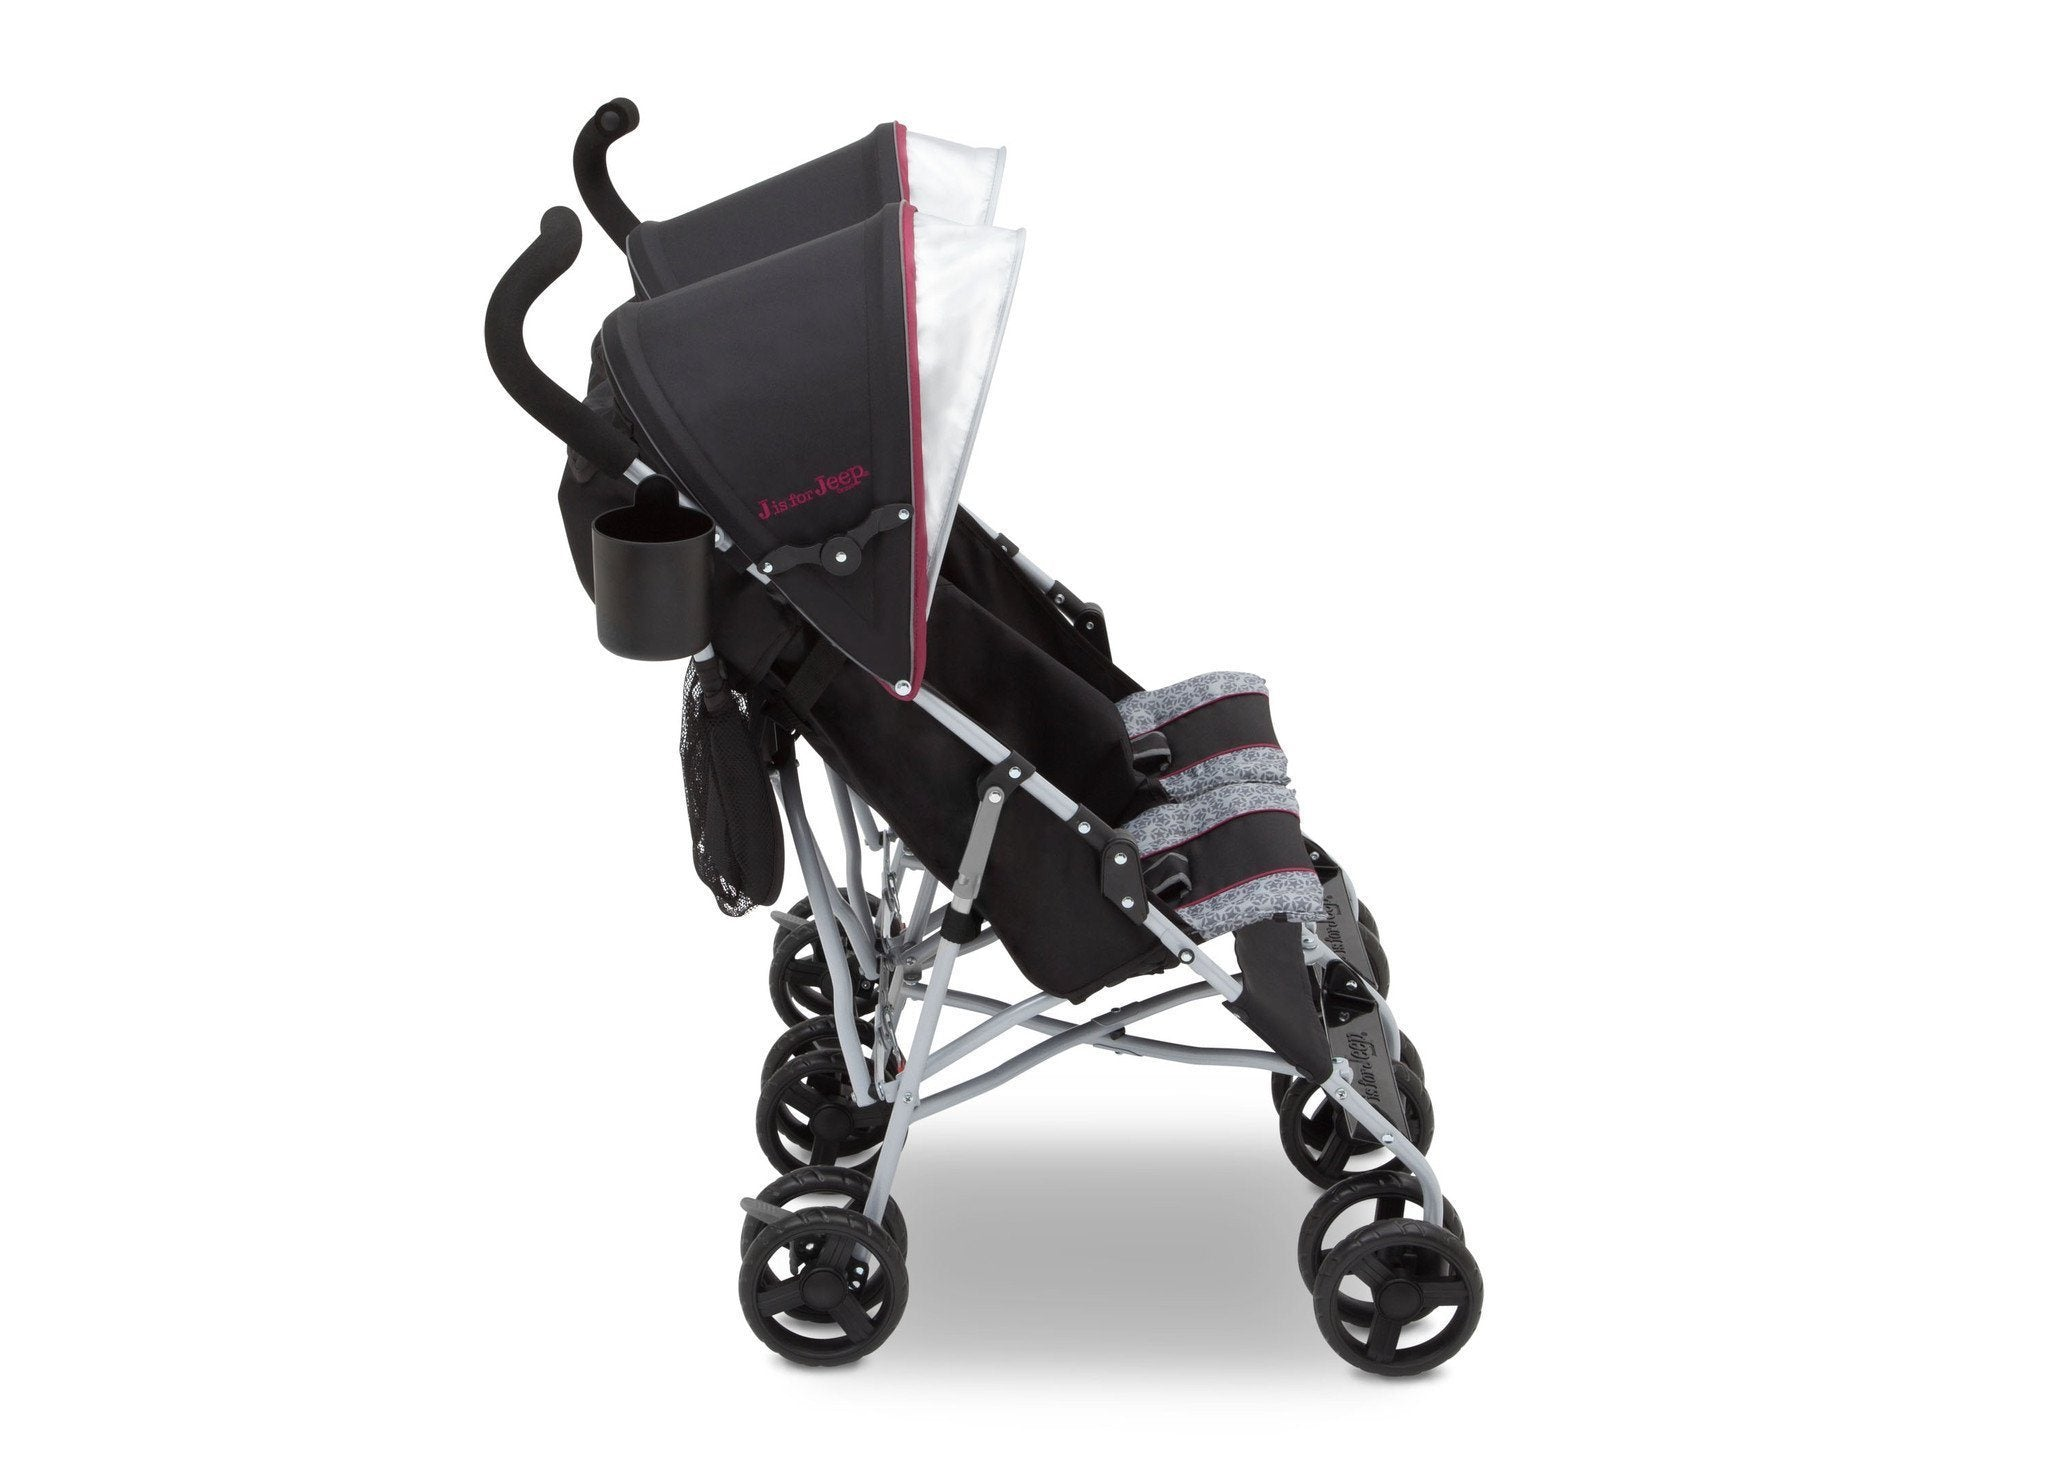 Jeep Brand Scout Double Stroller by Delta Children, Lunar Burgundy (0981), with parent cup holder